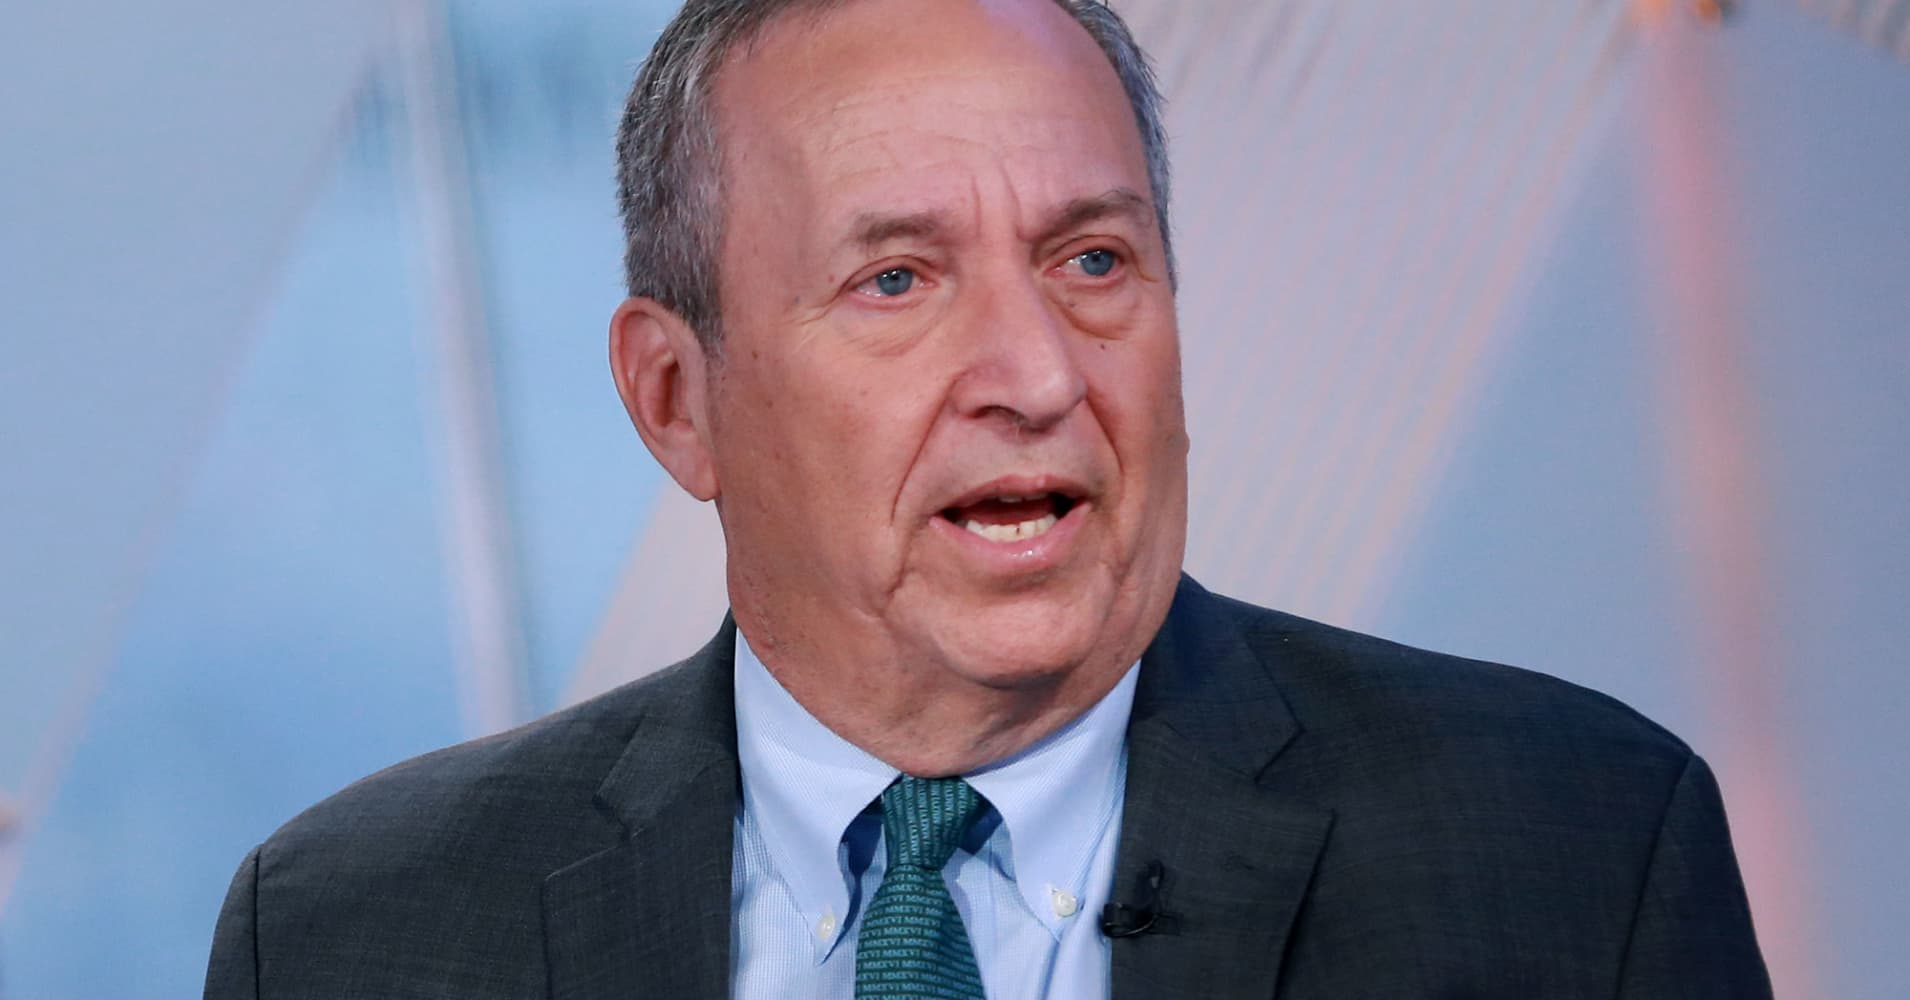 I never imagined a White House 'right of Exxon' on climate, says Larry Summers